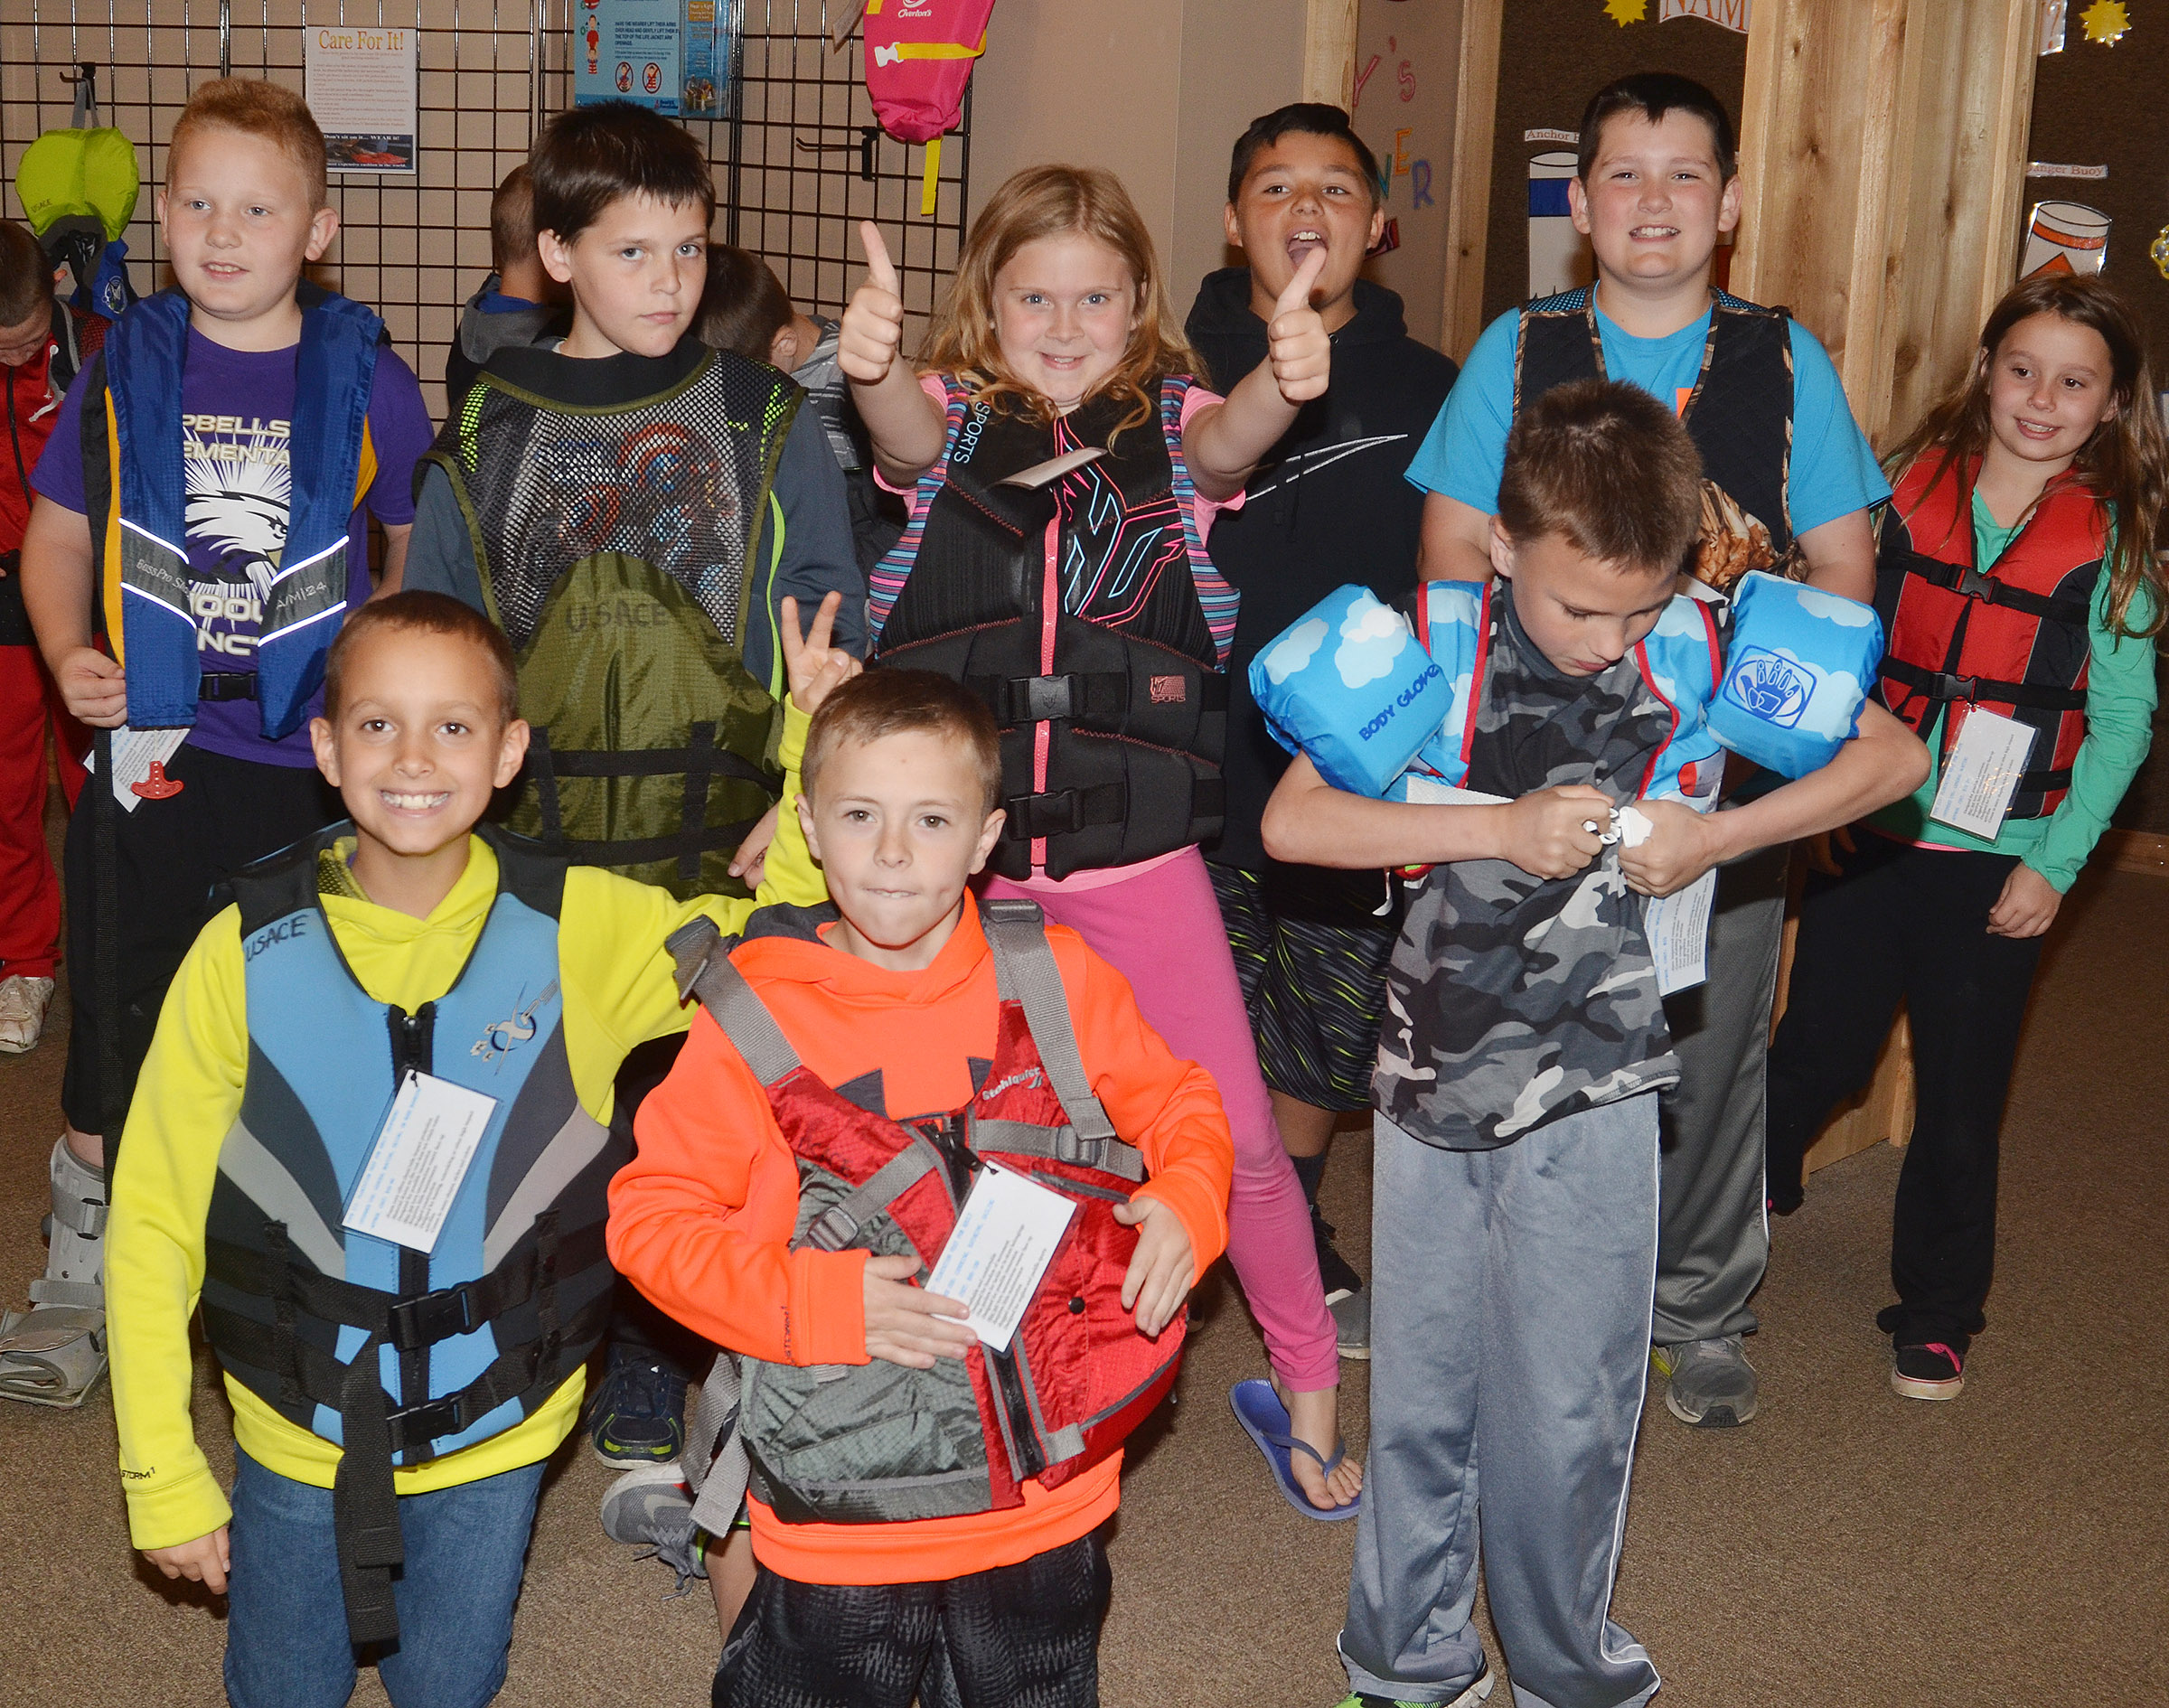 CES third-graders try on life jackets at the Green River Lake Visitor Center. From left, front, are Bradley Paris, Keaton Hord and Jayden Harris. Back, Isaiah Jeffries, Chris Brown, Arianna Childers, Brayden Paiz, Ethan Garrison and McKailynn Grubaugh.